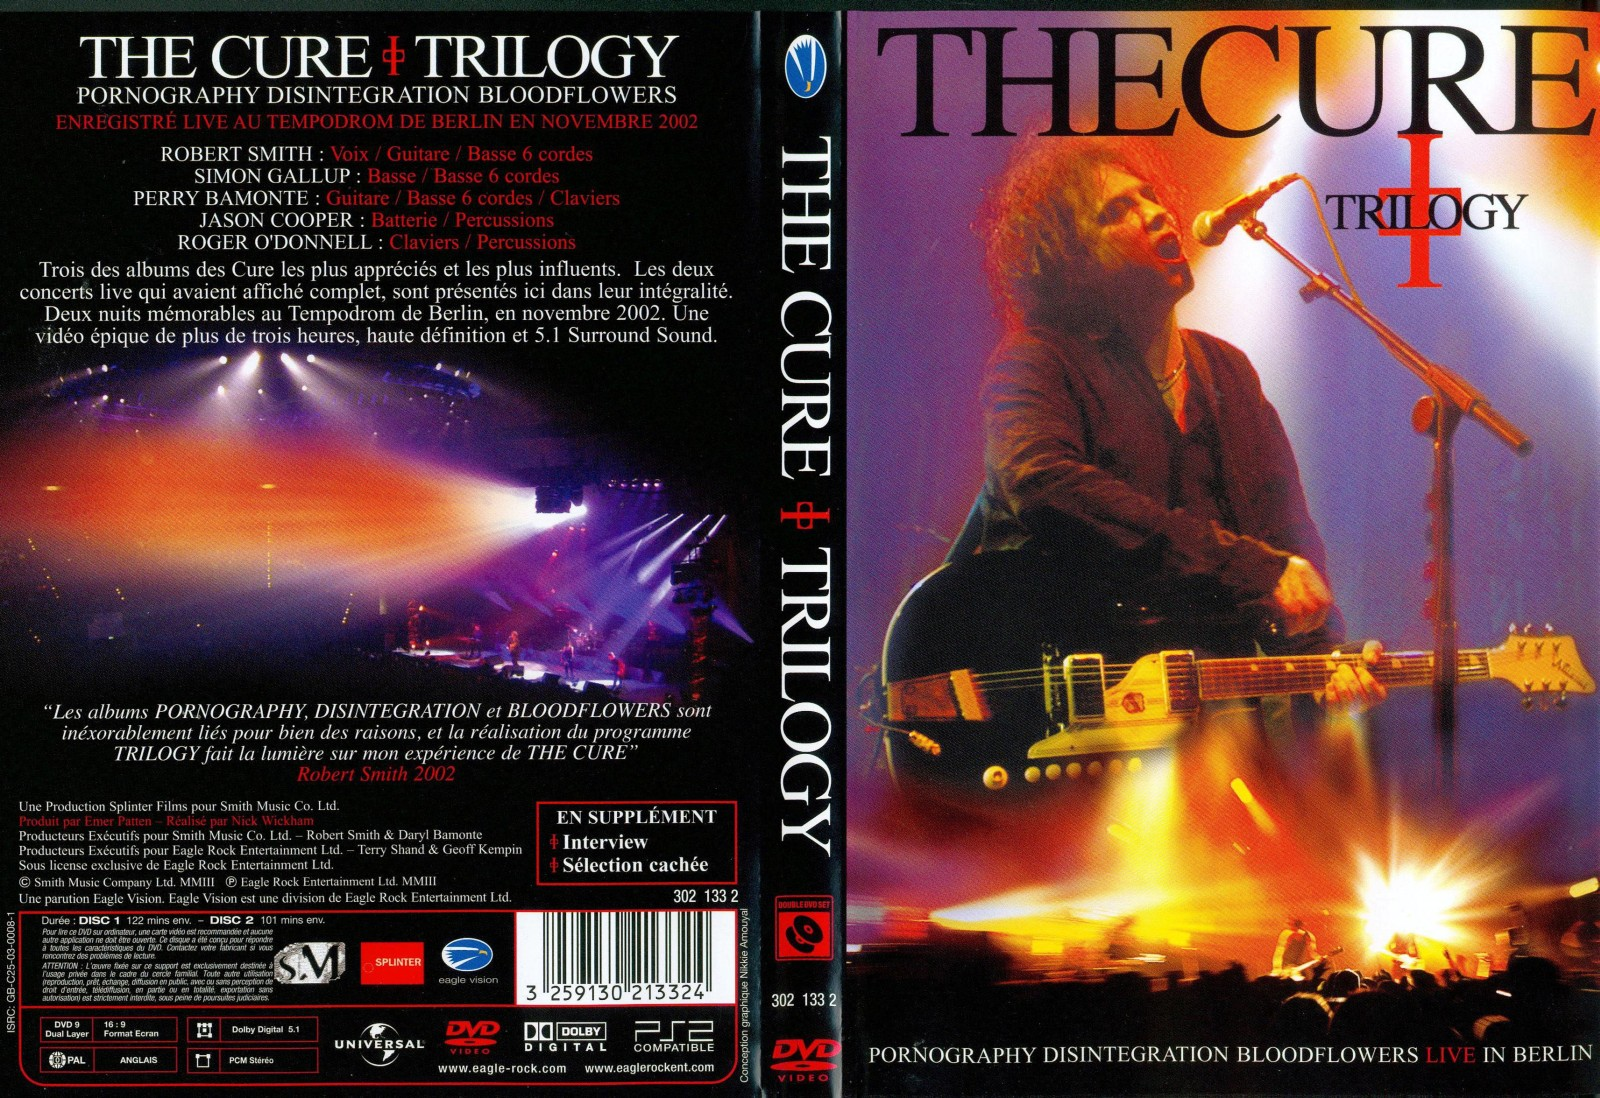 [Bild: the_cure_trilogy-2035n5zj3.jpg]